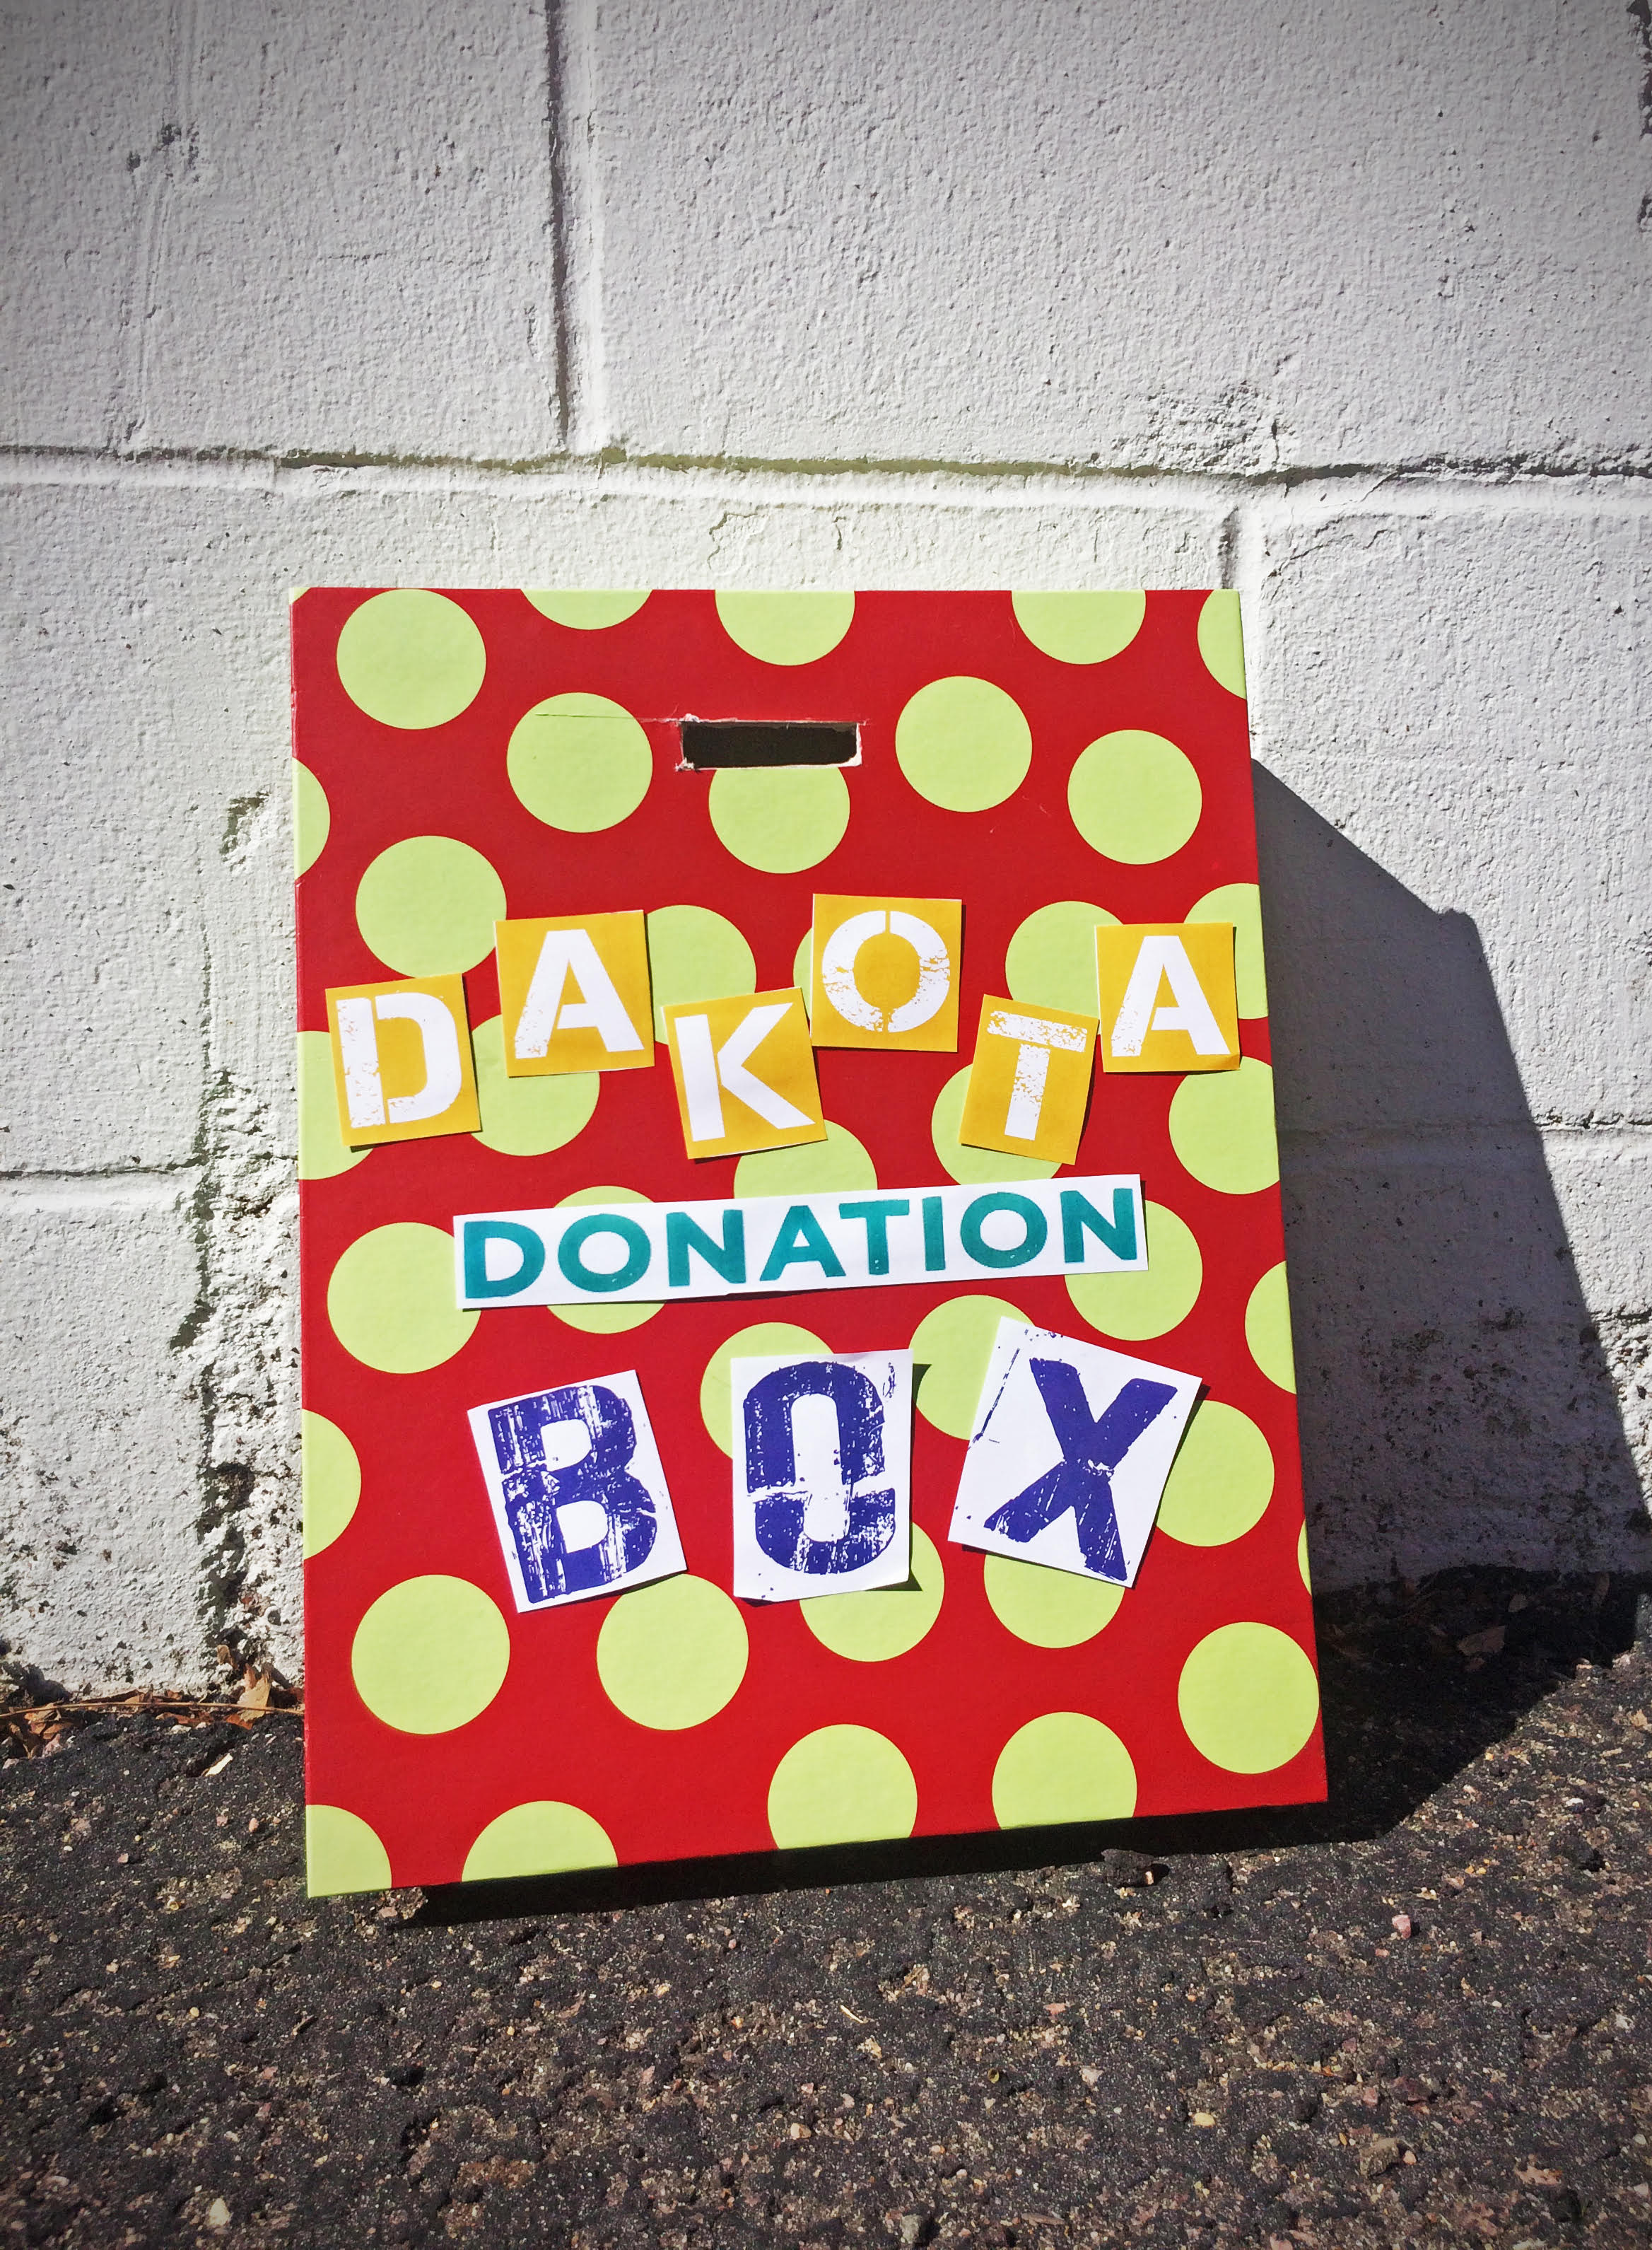 Dakota Donation Box.jpg